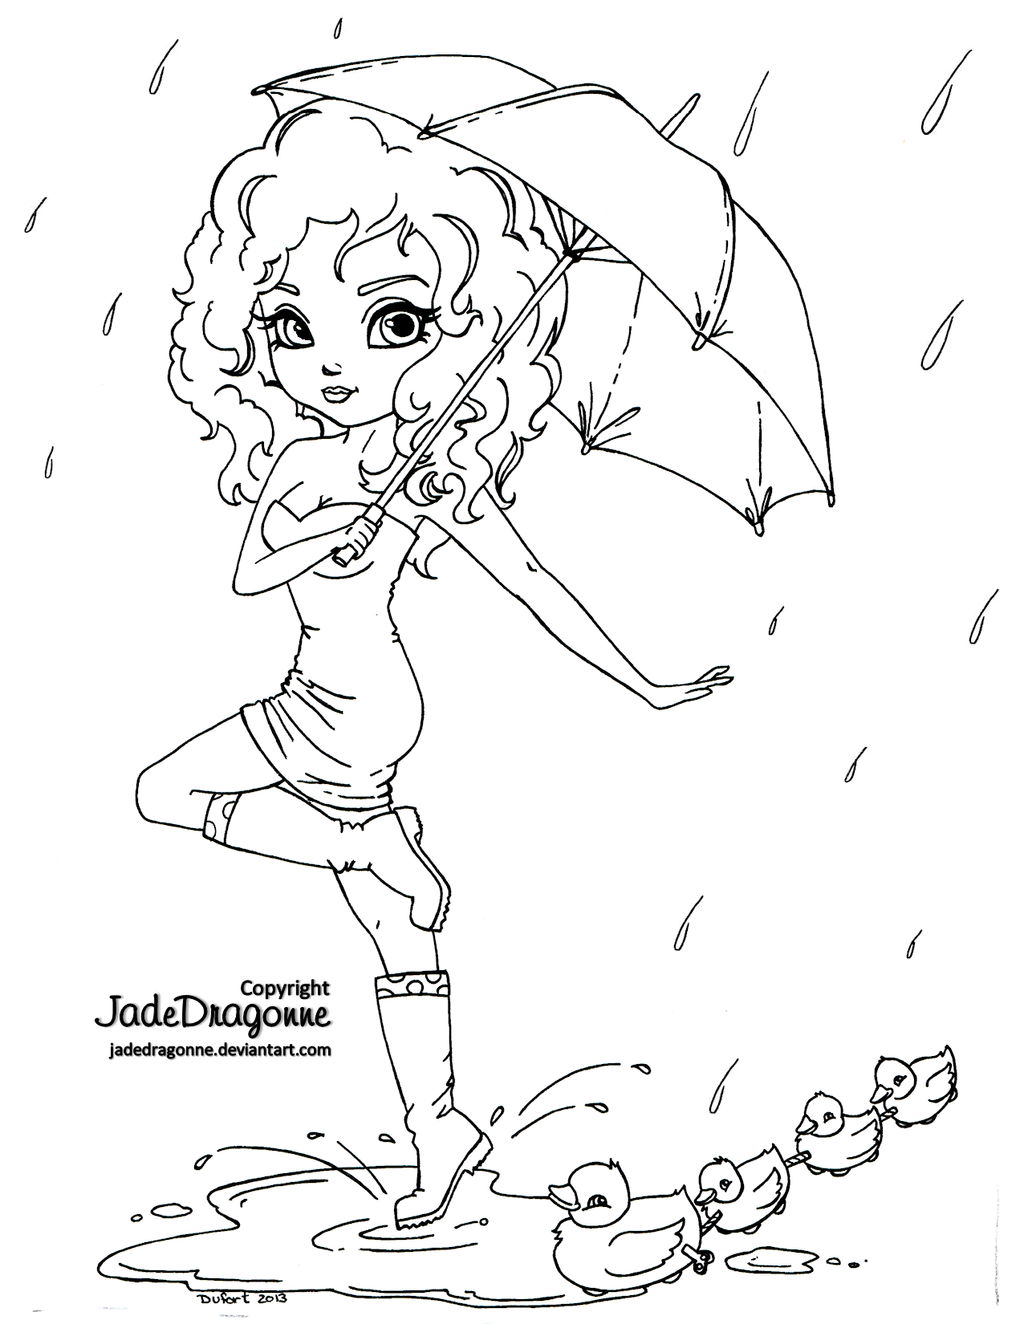 jadedragonne deviantart coloring pages - photo#13